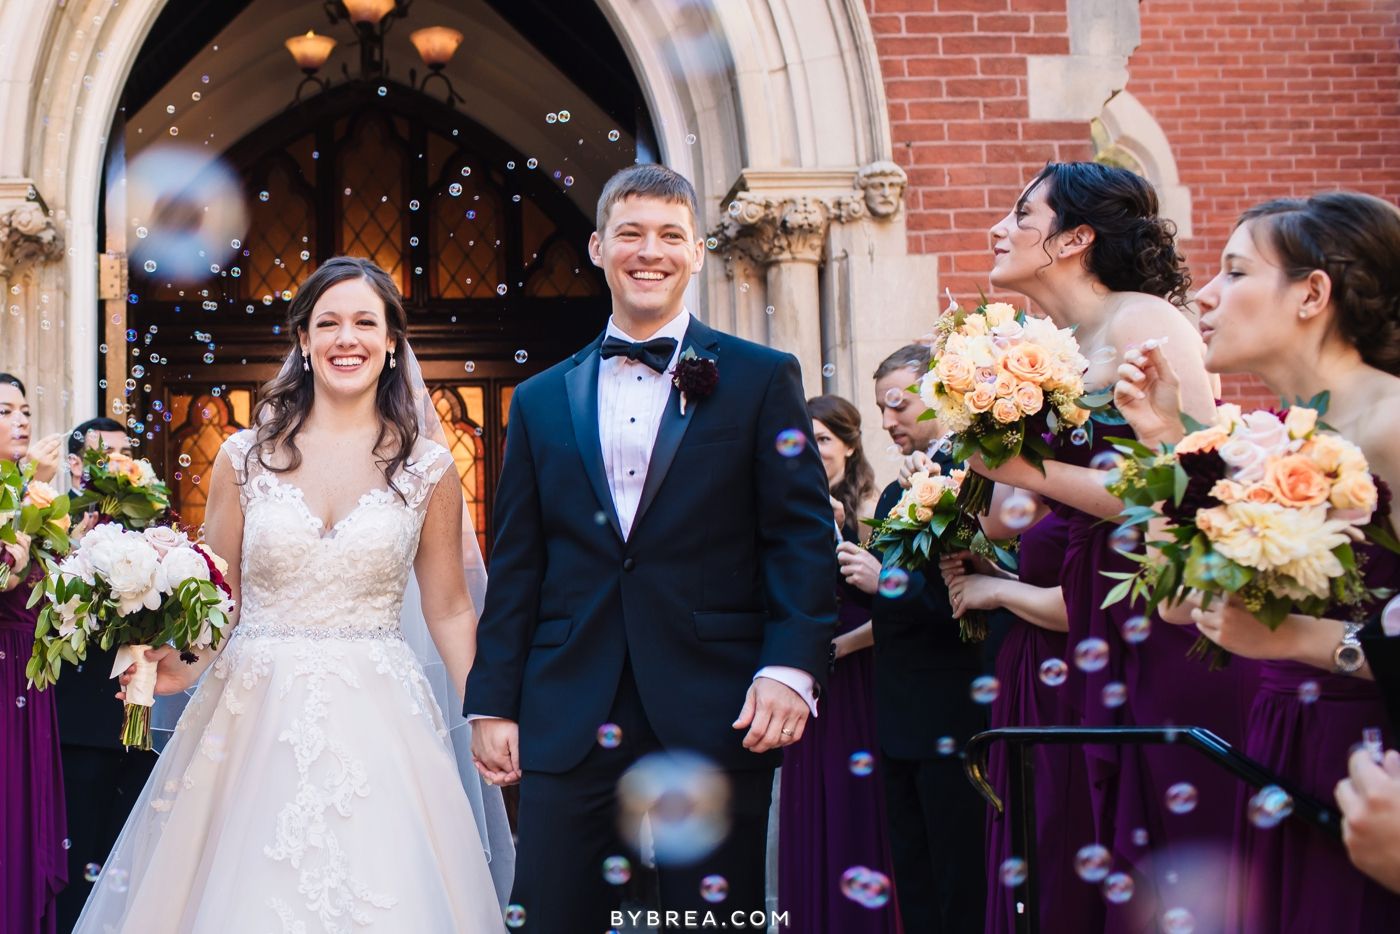 Bride and groom bubble recession out of Dahlgren Chapel